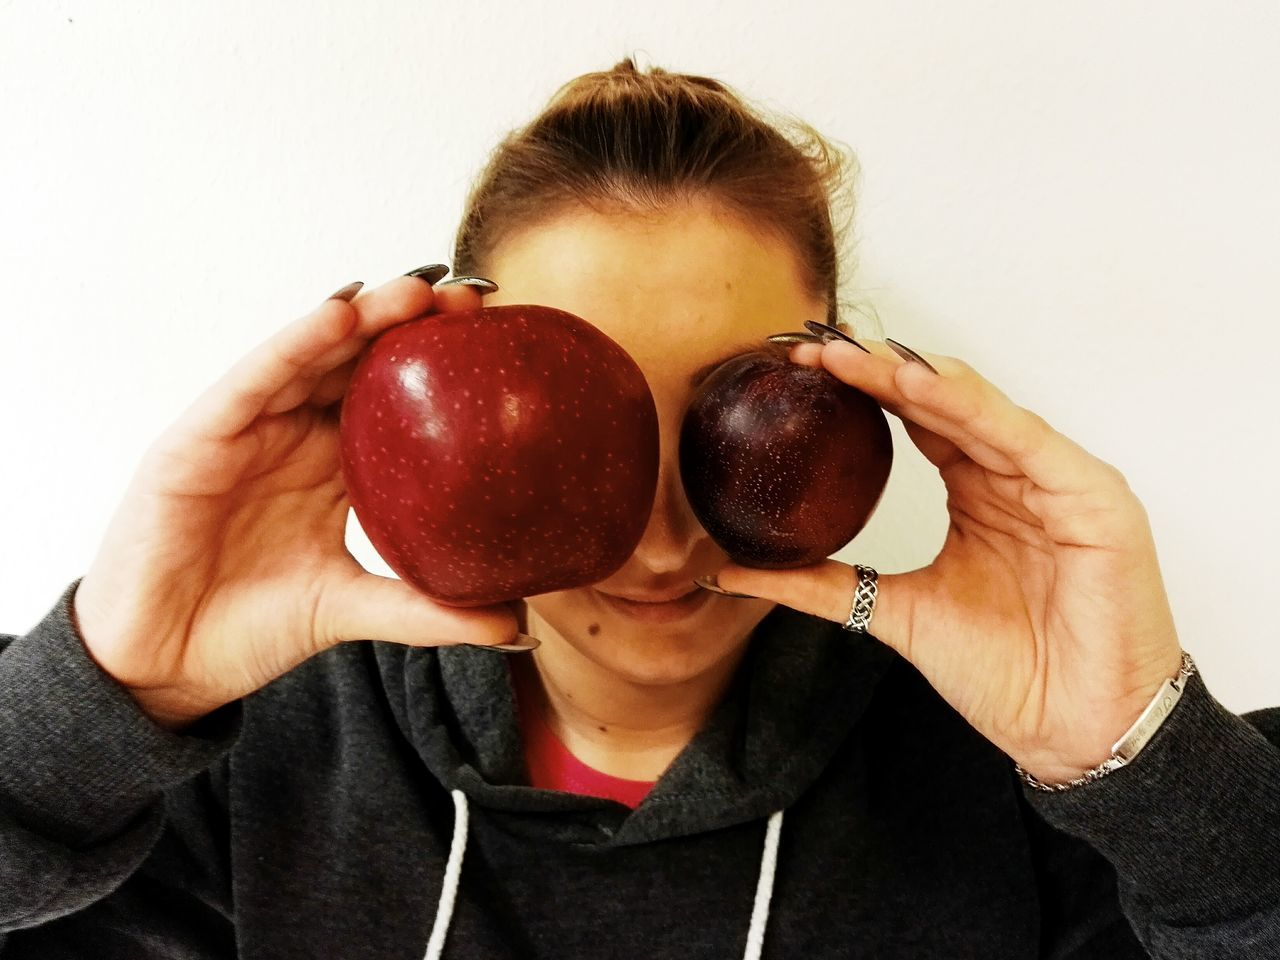 Luck in my eyes One Person Human Body Part People Holding Adult Fruit Indoors  Food Women Close-up Human Hand White Background Young Adult Day Apple Diet Lifestyle Funny Faces Fun Funny Fruits Adults Only Only Men